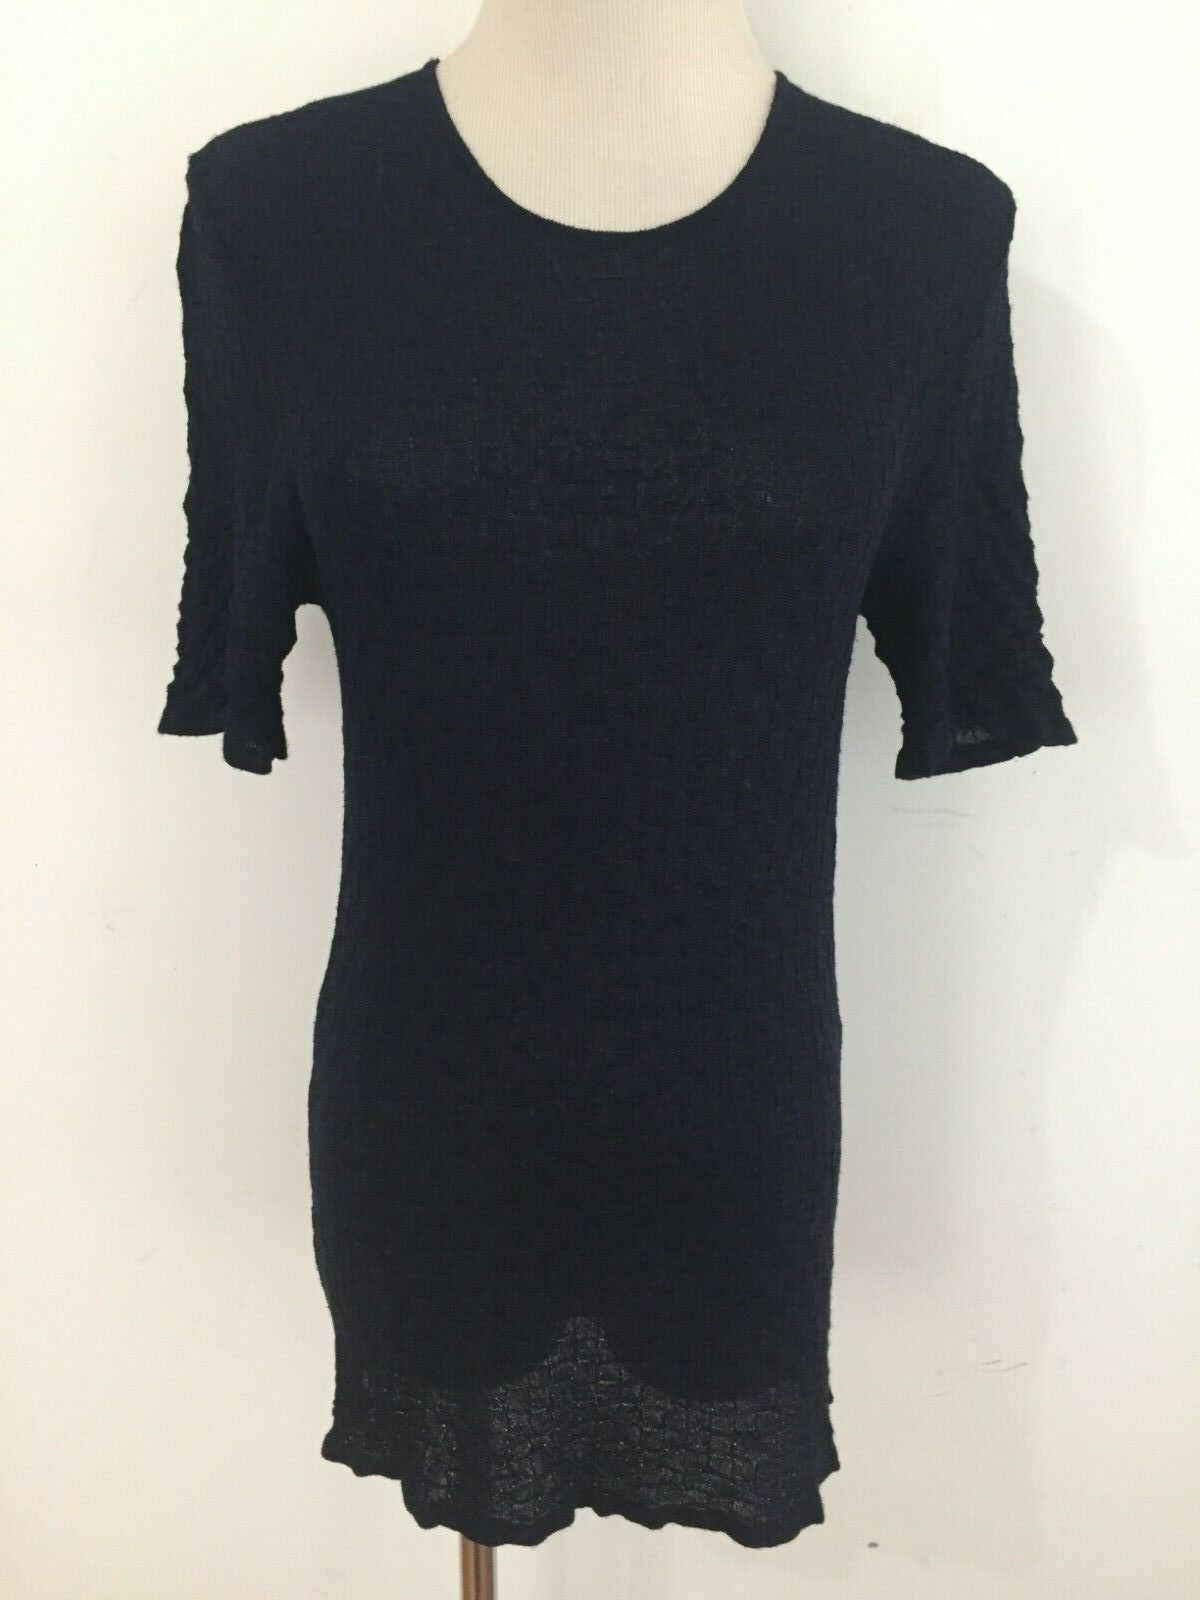 WEINBERG Paris Made in France Tunic Top Semi-Sheer Midnight bluee Size 2